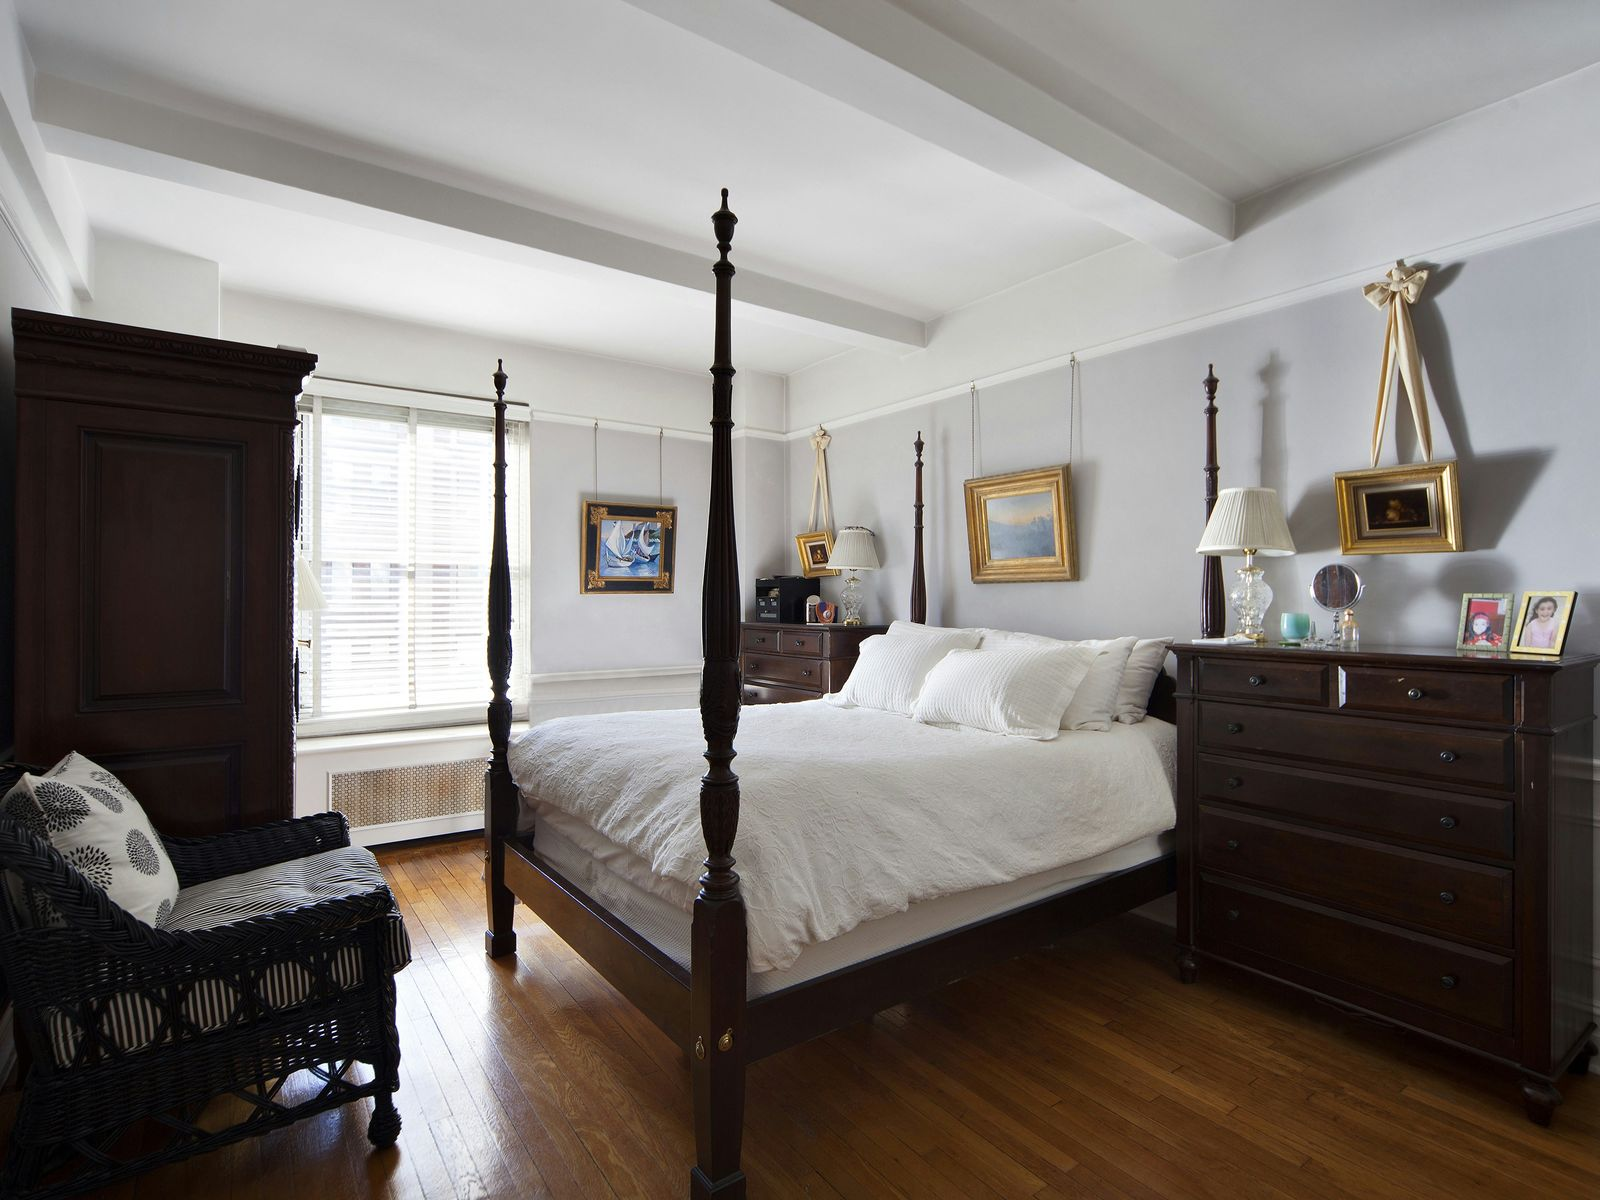 17 E 96th St- Classic 5 off Central Park